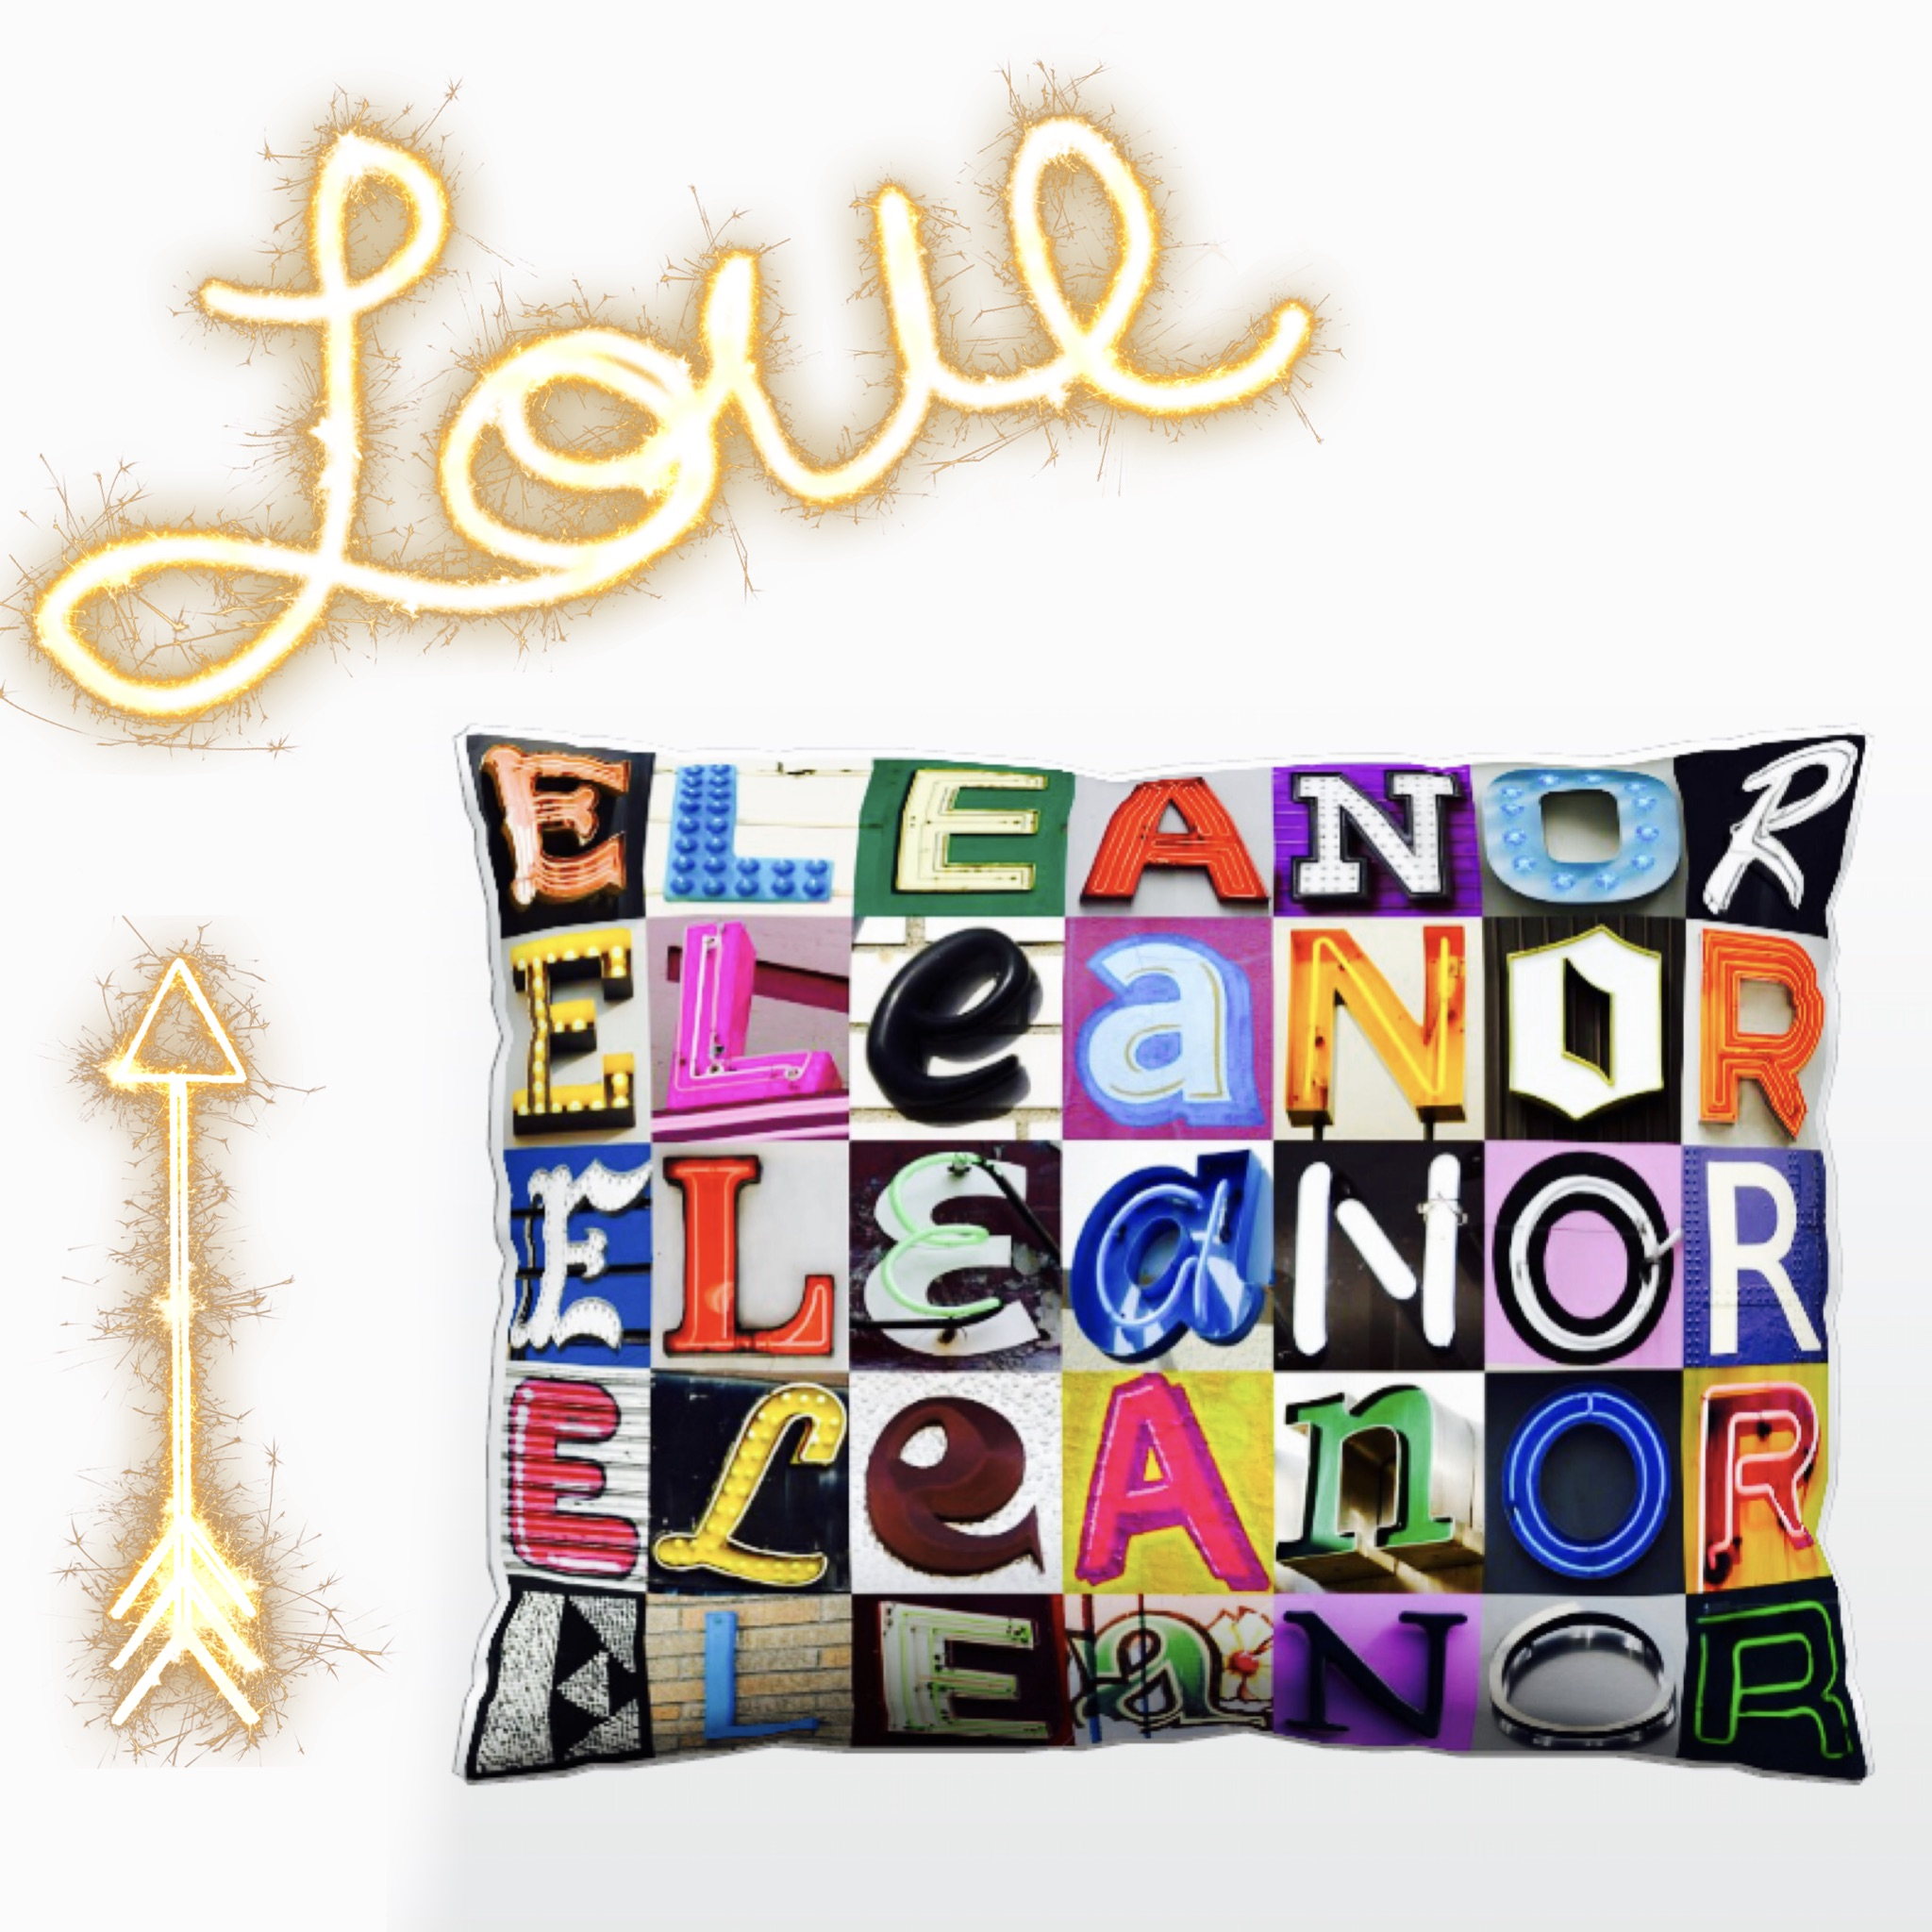 https://www.etsy.com/listing/463832728/personalized-pillow-featuring-eleanor-in